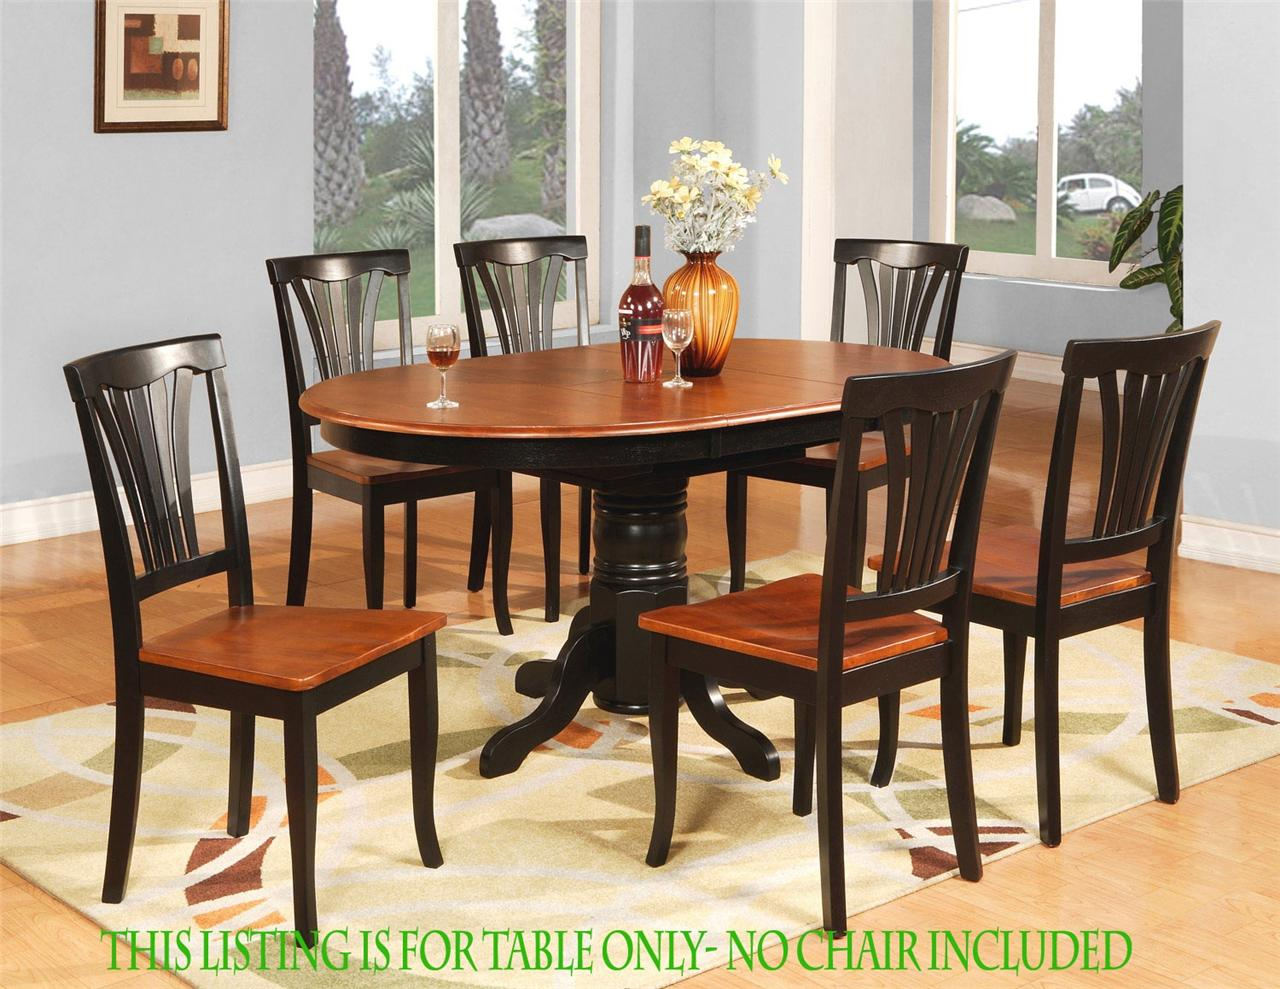 Oval dinette kitchen dining room table only 42 x 60 with for 4 chair kitchen table set